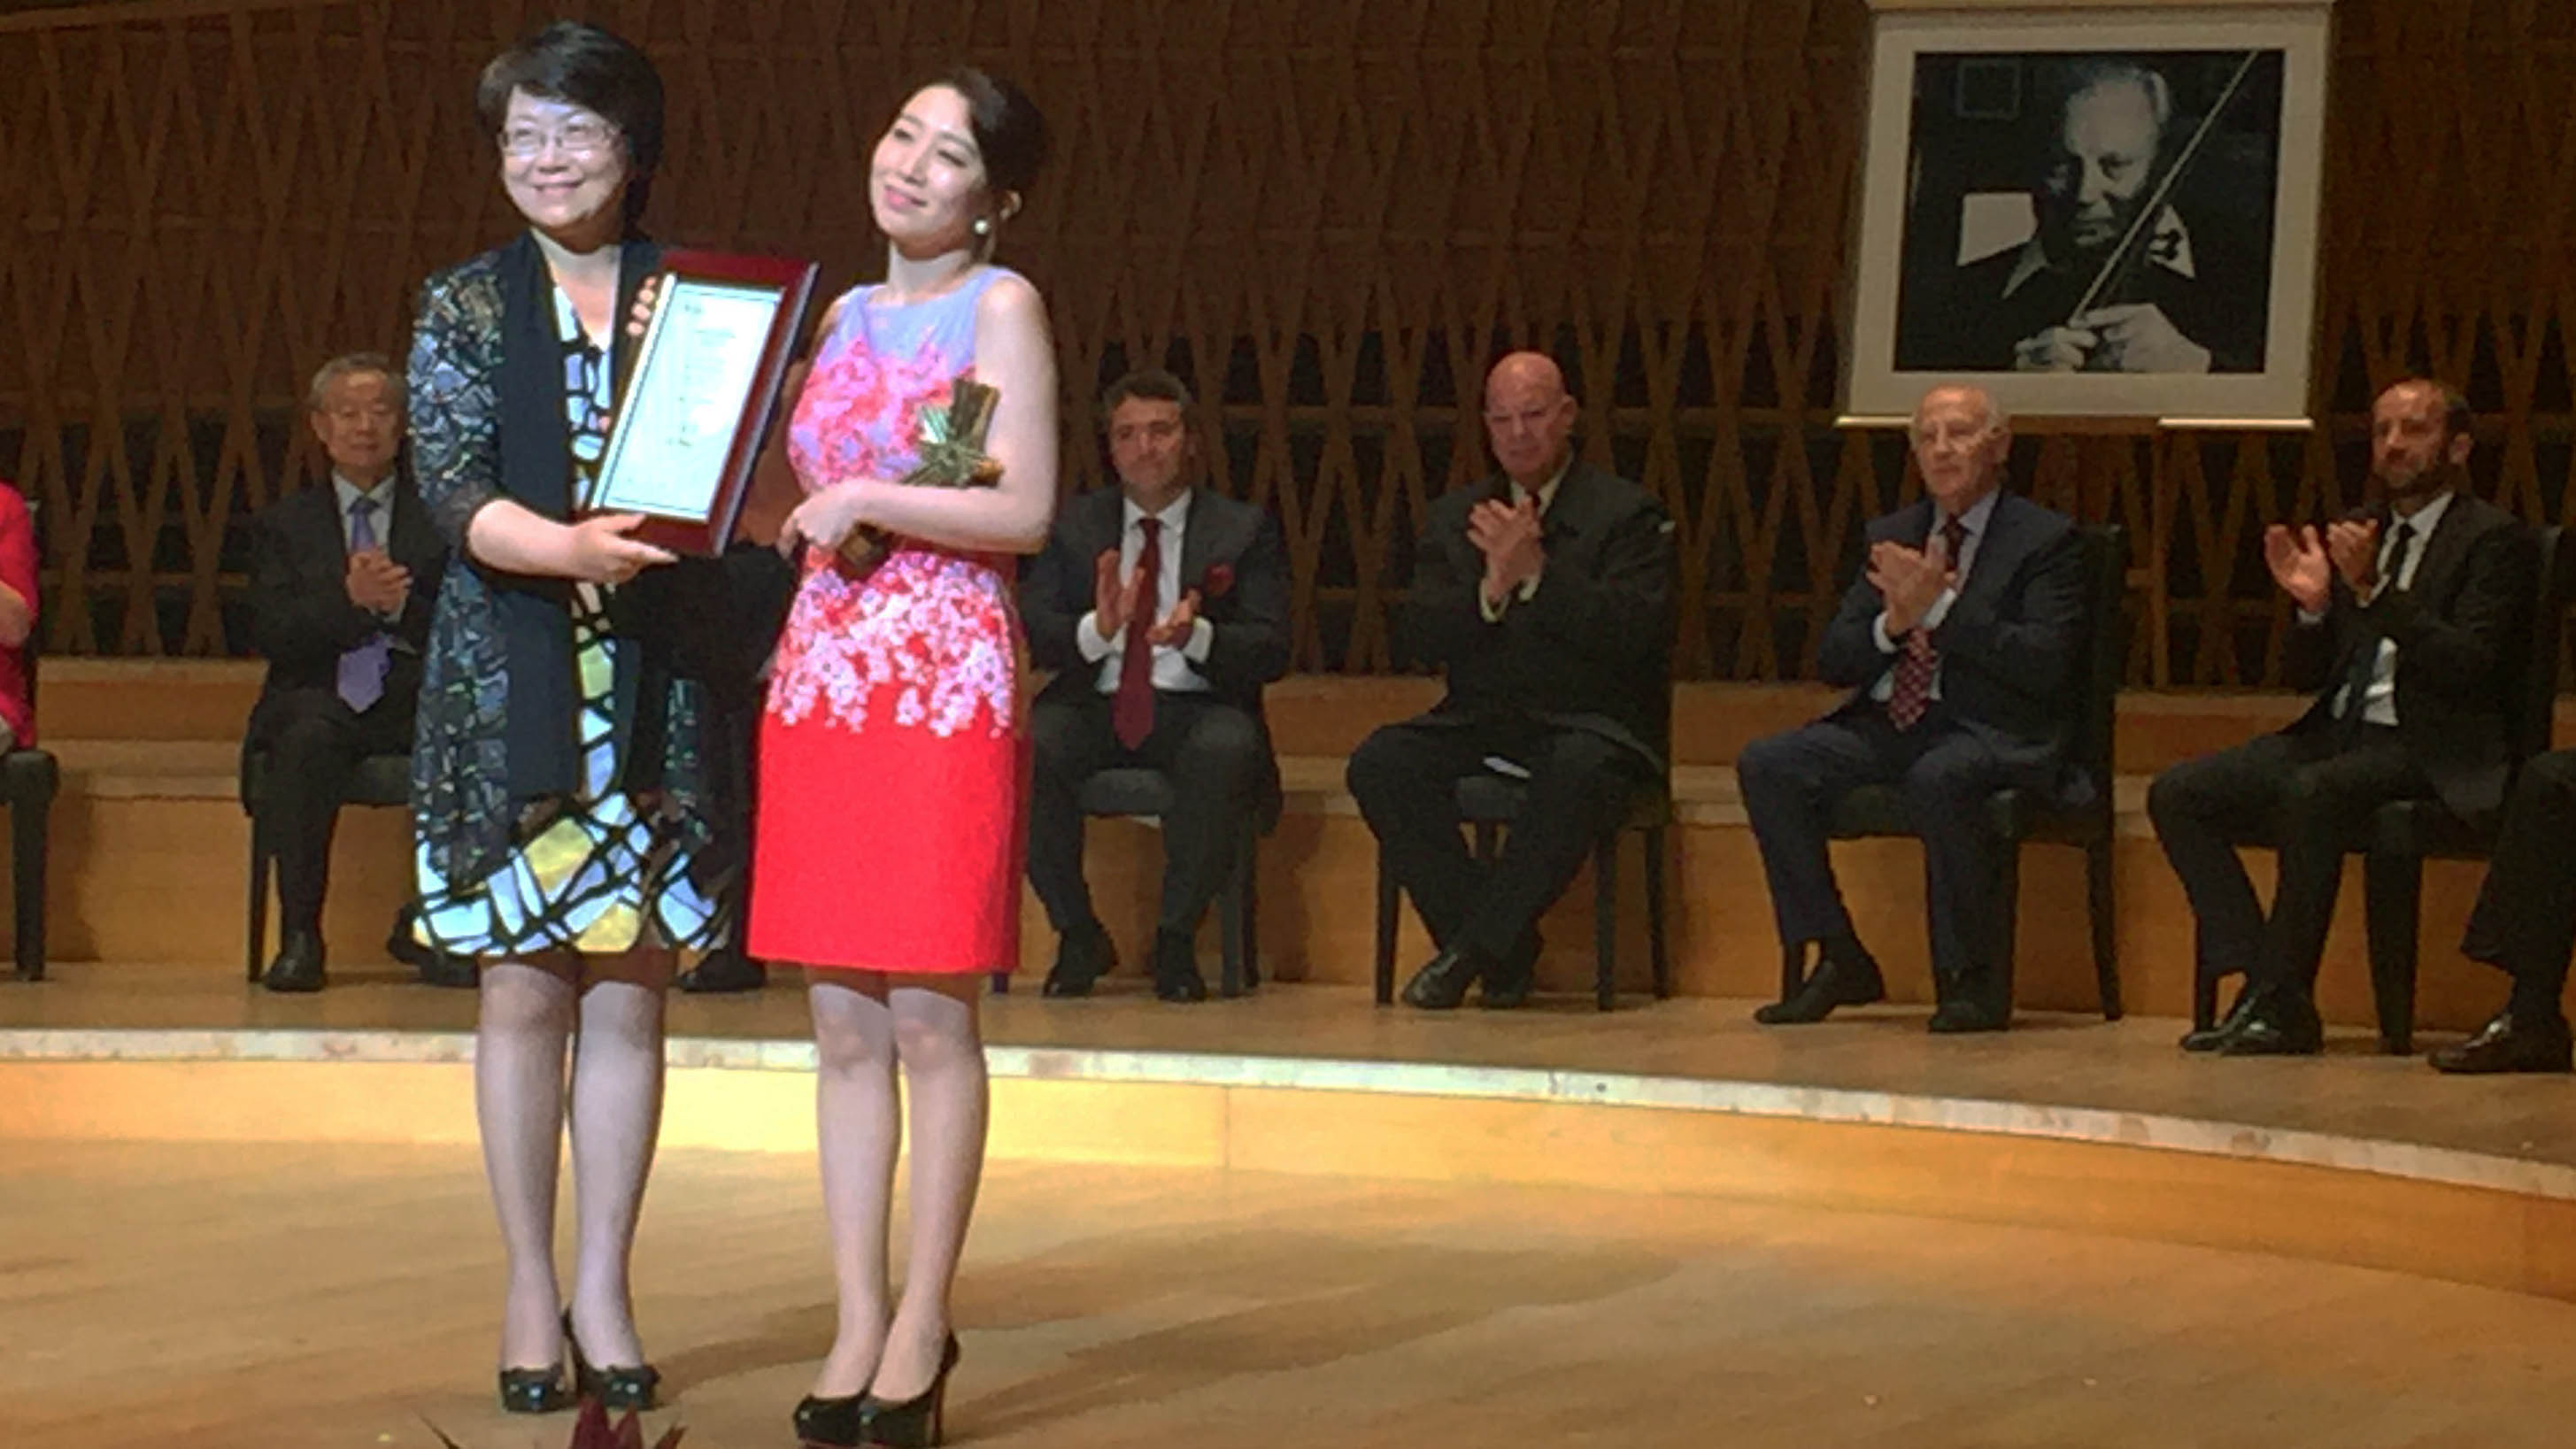 Japanese Violinist Mayu Kishima wins $100,000 First Prize in Shanghai Isaac Stern International Violin Competition